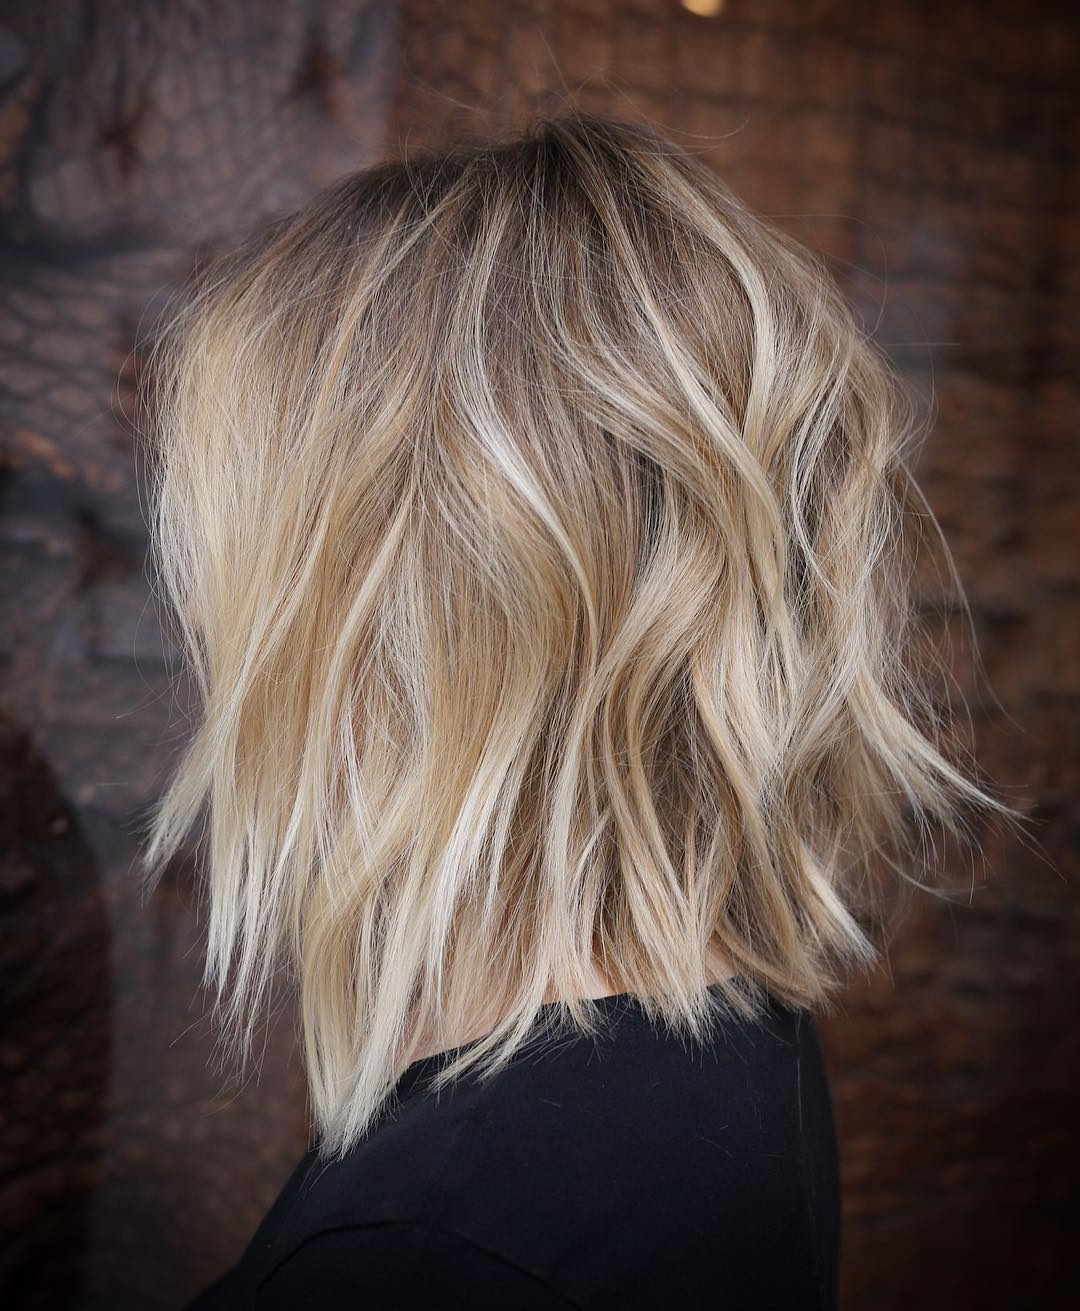 10 Stylish Lob Hairstyle Ideas, Best Shoulder Length Hair Intended For 2020 Straight Layered Hairstyles With Twisted Top (Gallery 2 of 20)